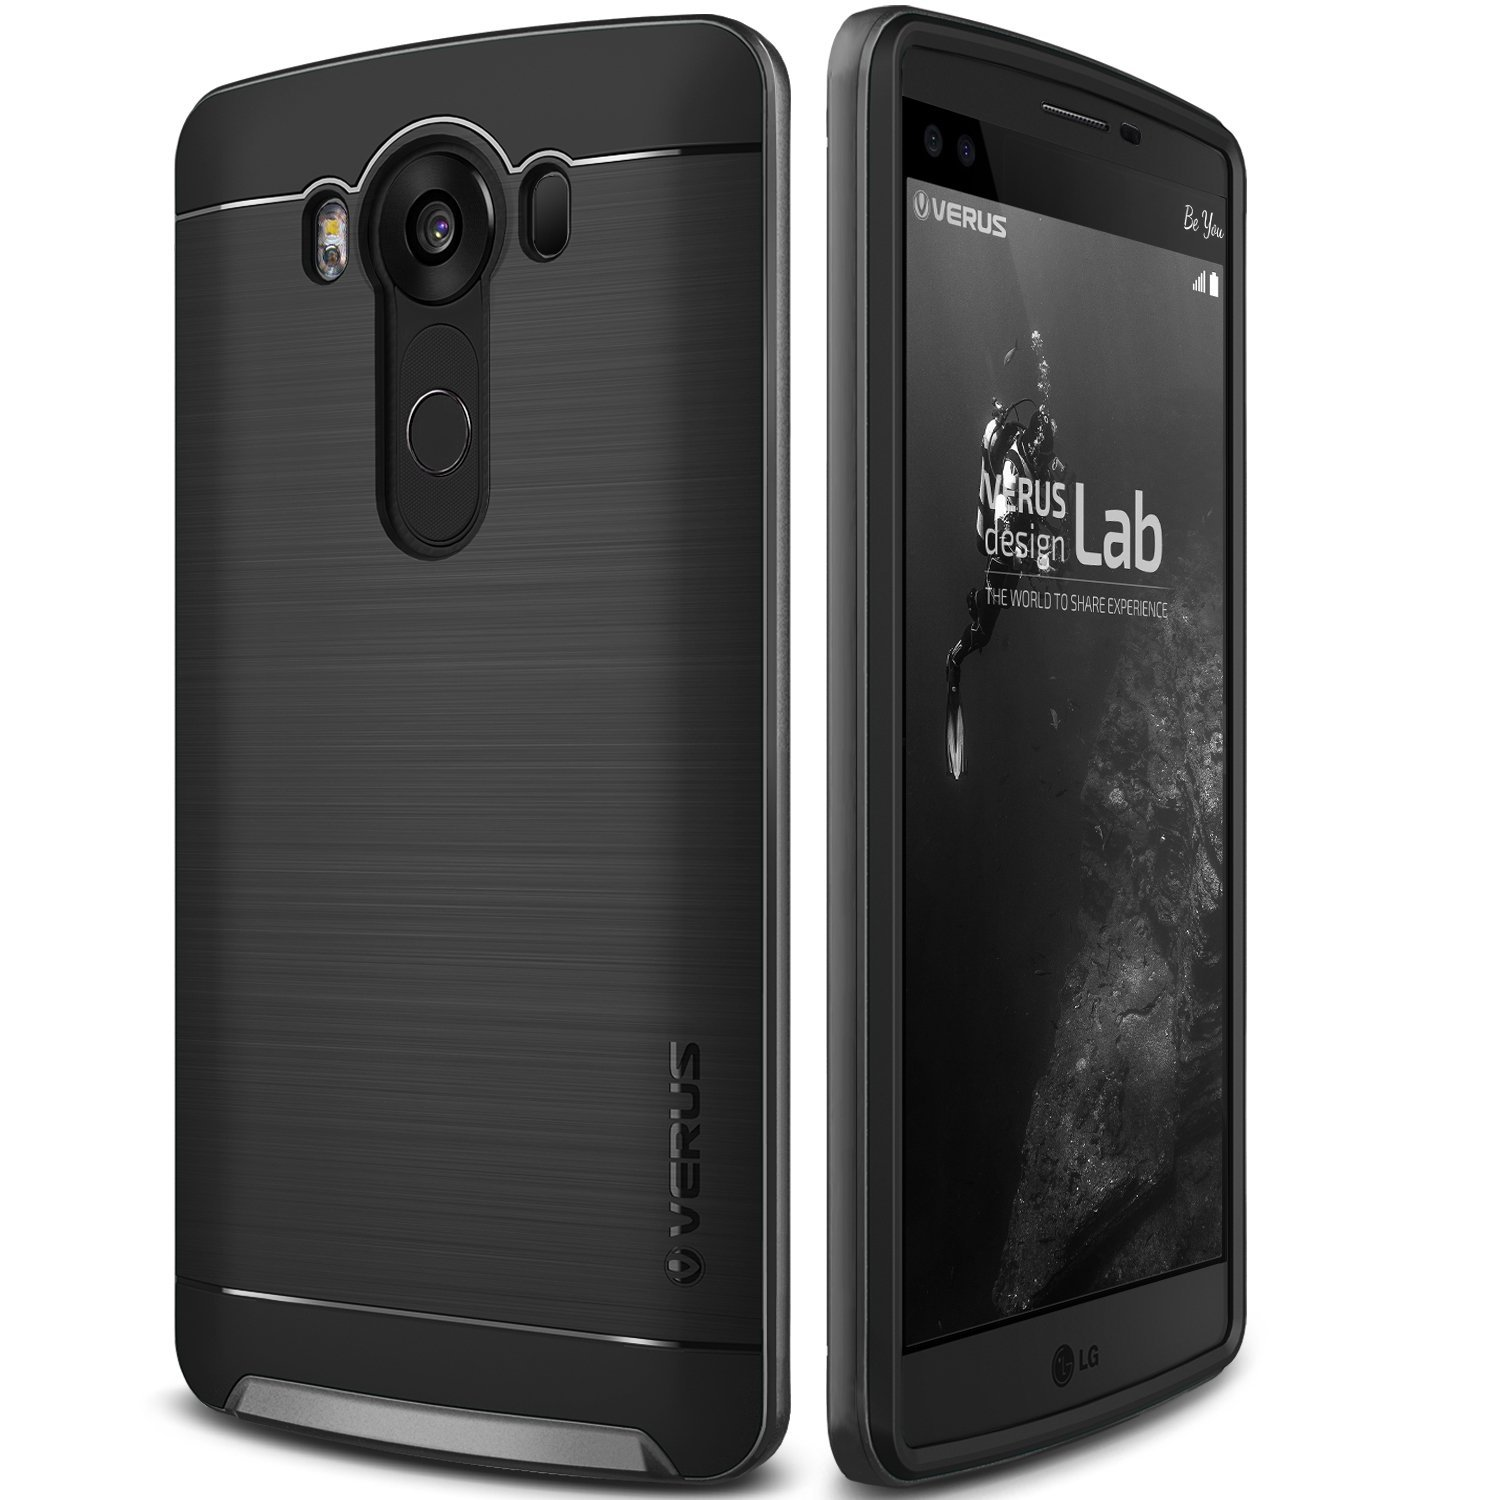 Verus Θήκη High Pro Shield Series LG V10 - Steel Silver